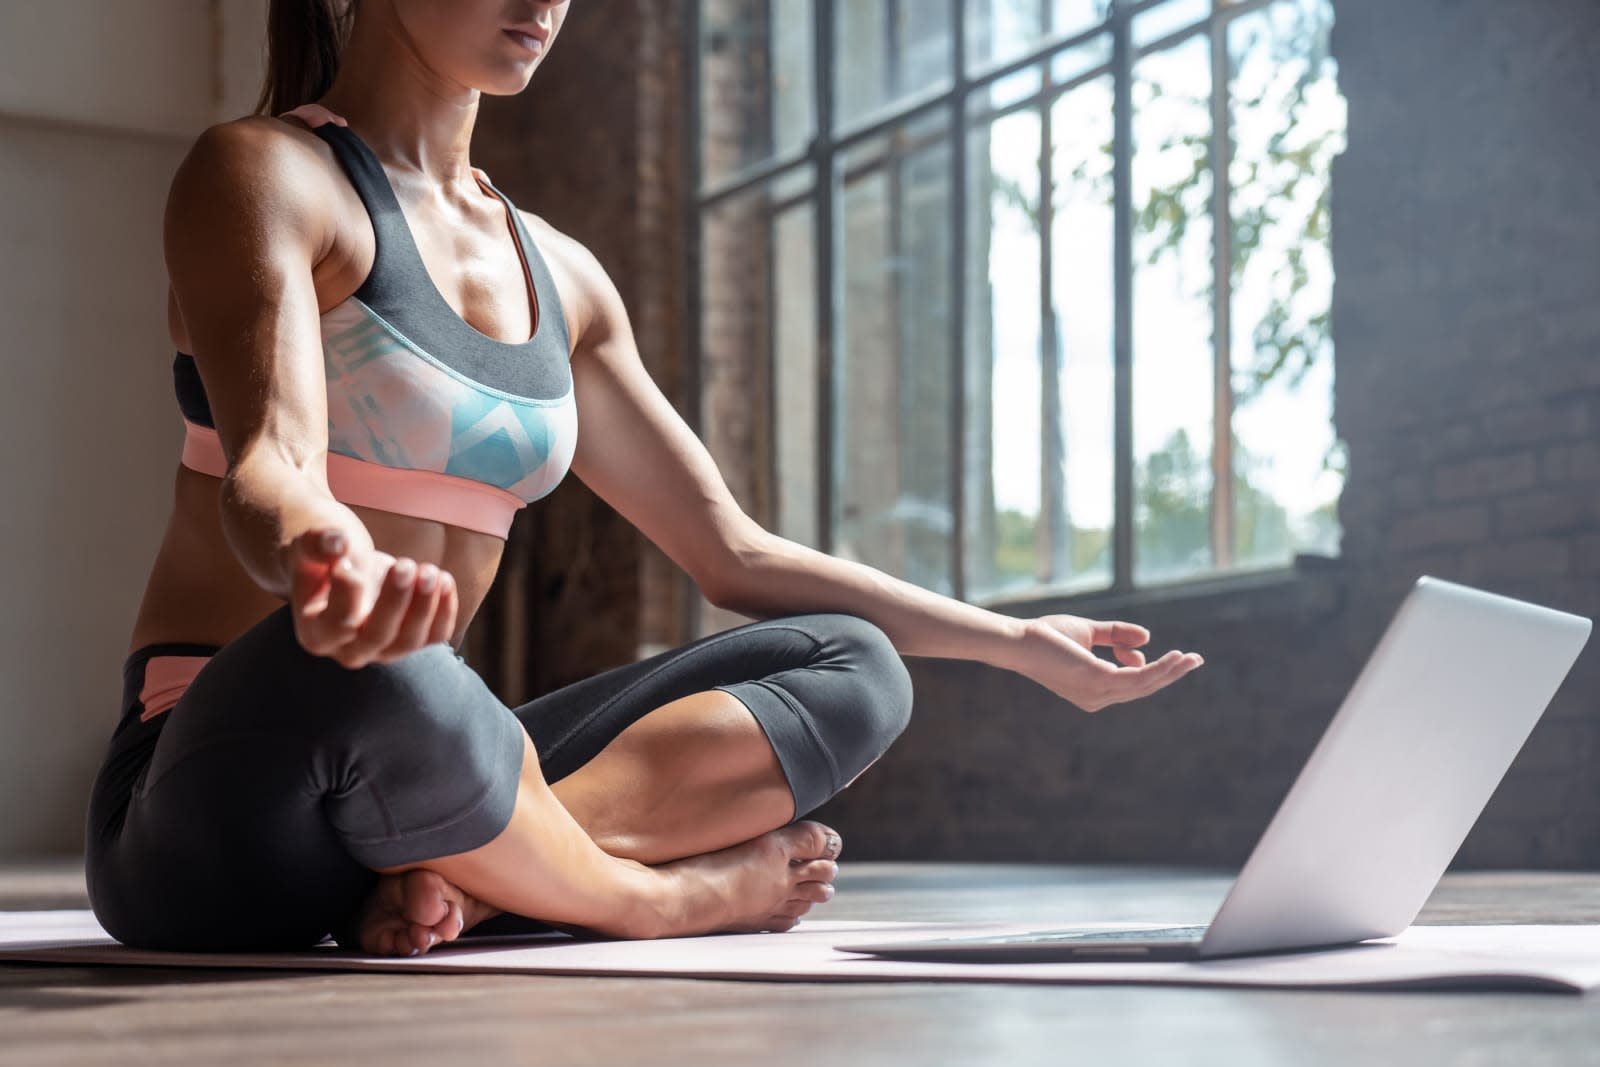 Closeup young sporty fit slim woman coach do practice video online training hatha yoga instructor modern laptop meditate Sukhasana posture relax breathe easy seat pose gym healthy lifestyle concept